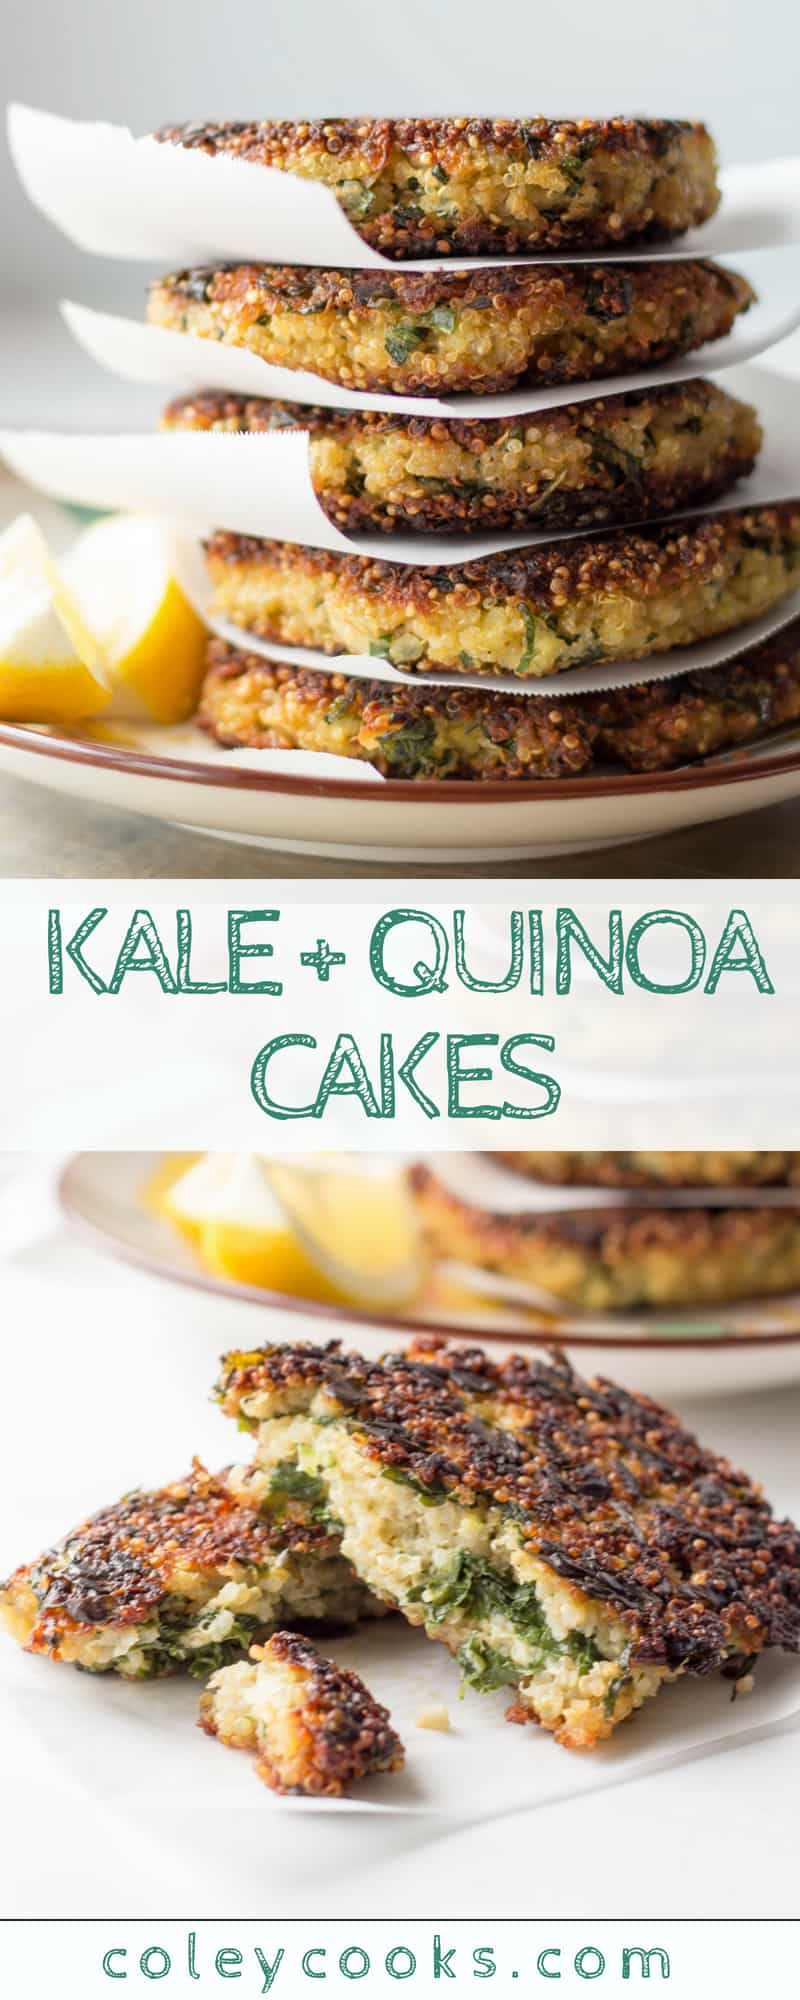 KALE + QUINOA CAKES | This easy vegetarian recipe is high in protein, fiber, and FREEZER FRIENDLY! It makes a lovely lunch, dinner or appetizer! #plantbased #recipe #protein #kale #quinoa #dinner | ColeyCooks.com